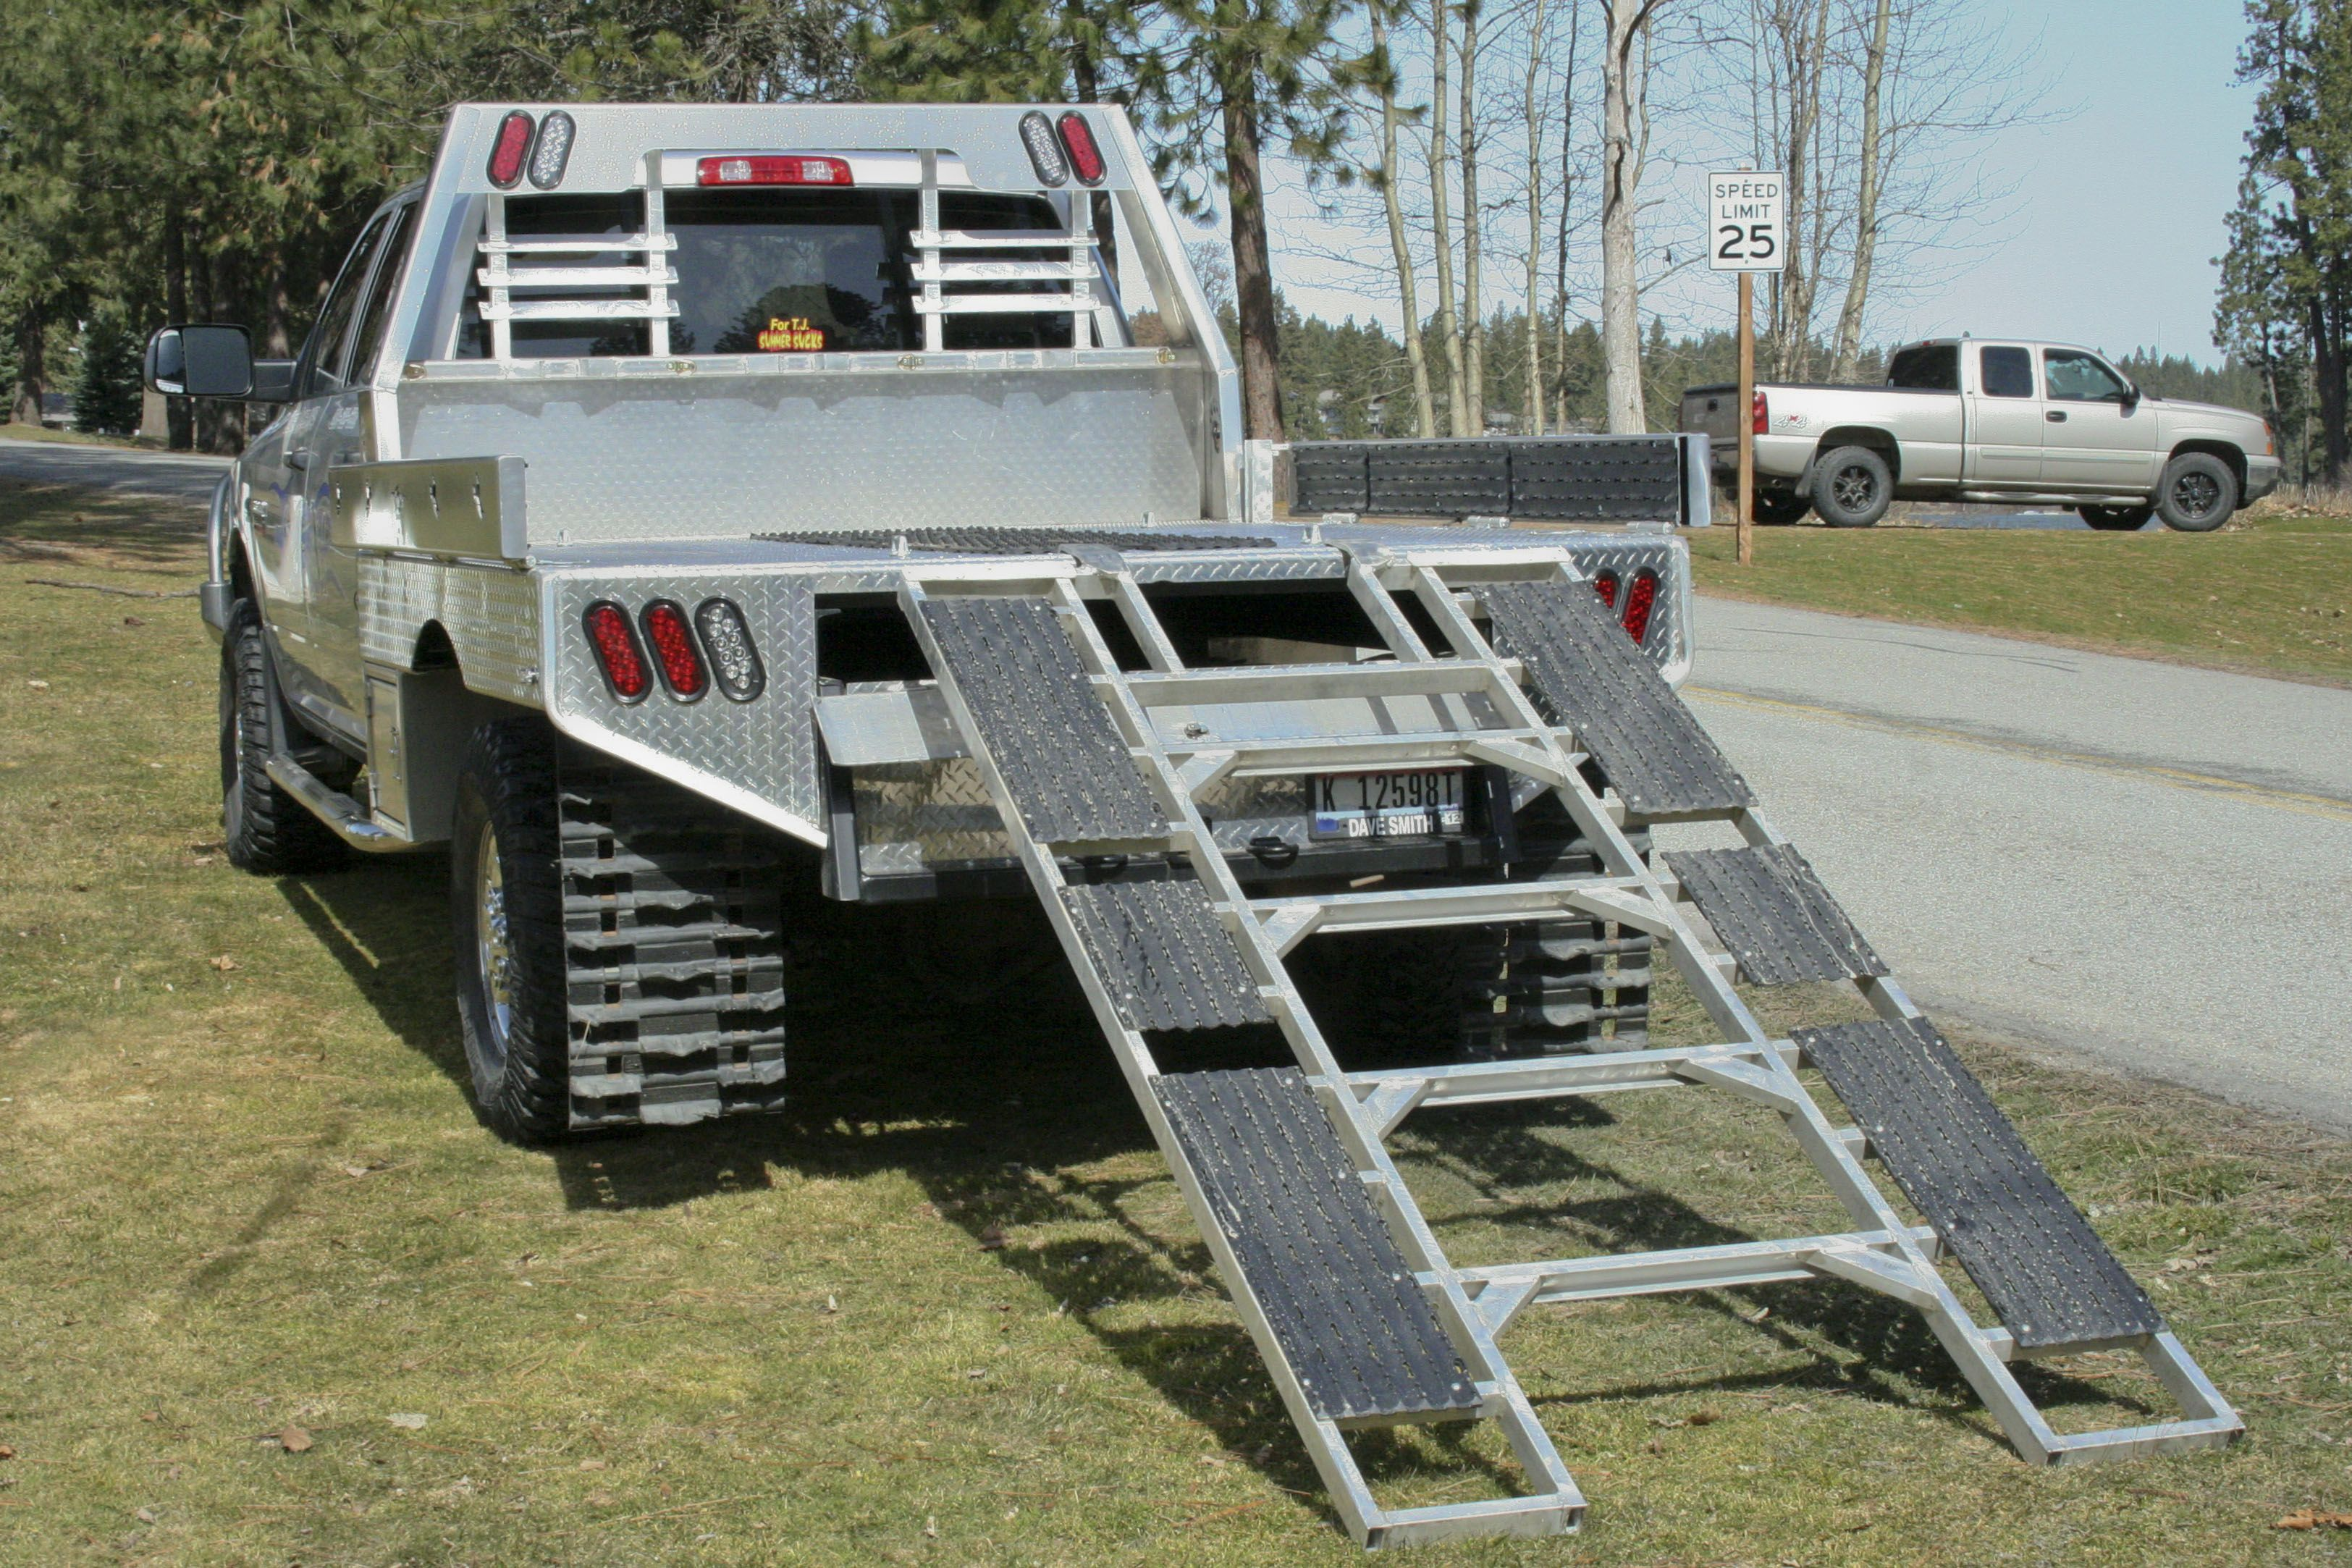 Need to put this flatbed on my truck snowmobiles